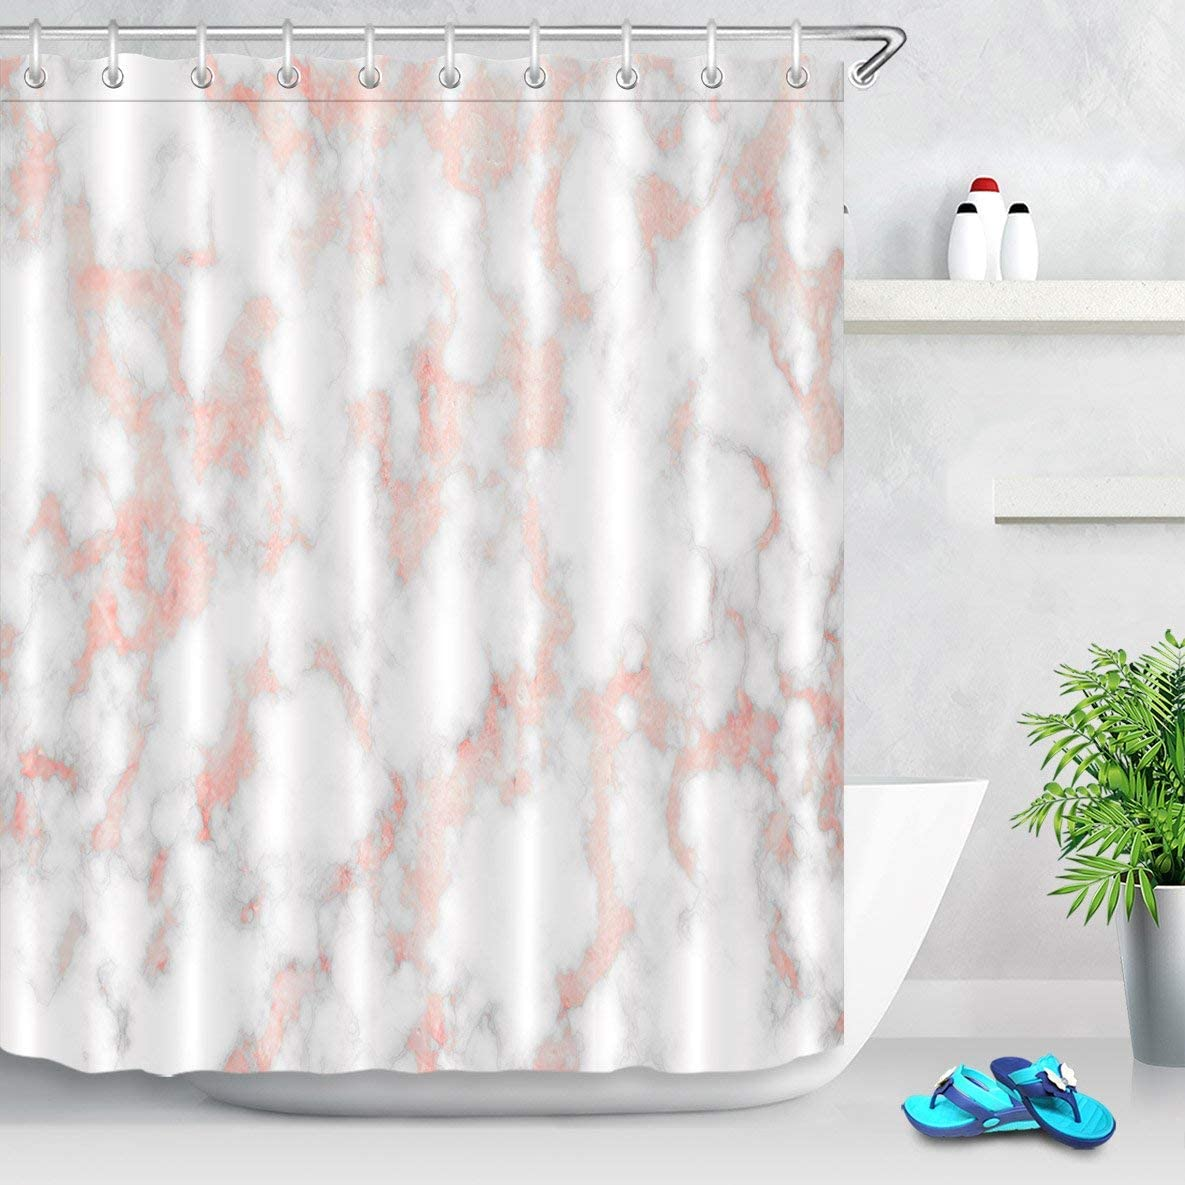 LB Rose Gold Marble Shower Curtain Set,Fashion Pink Metal Marble with Mineral Ink Texture Trendy Bathroom Curtain 72x72 Inch Polyester Fabric with 12 Hooks